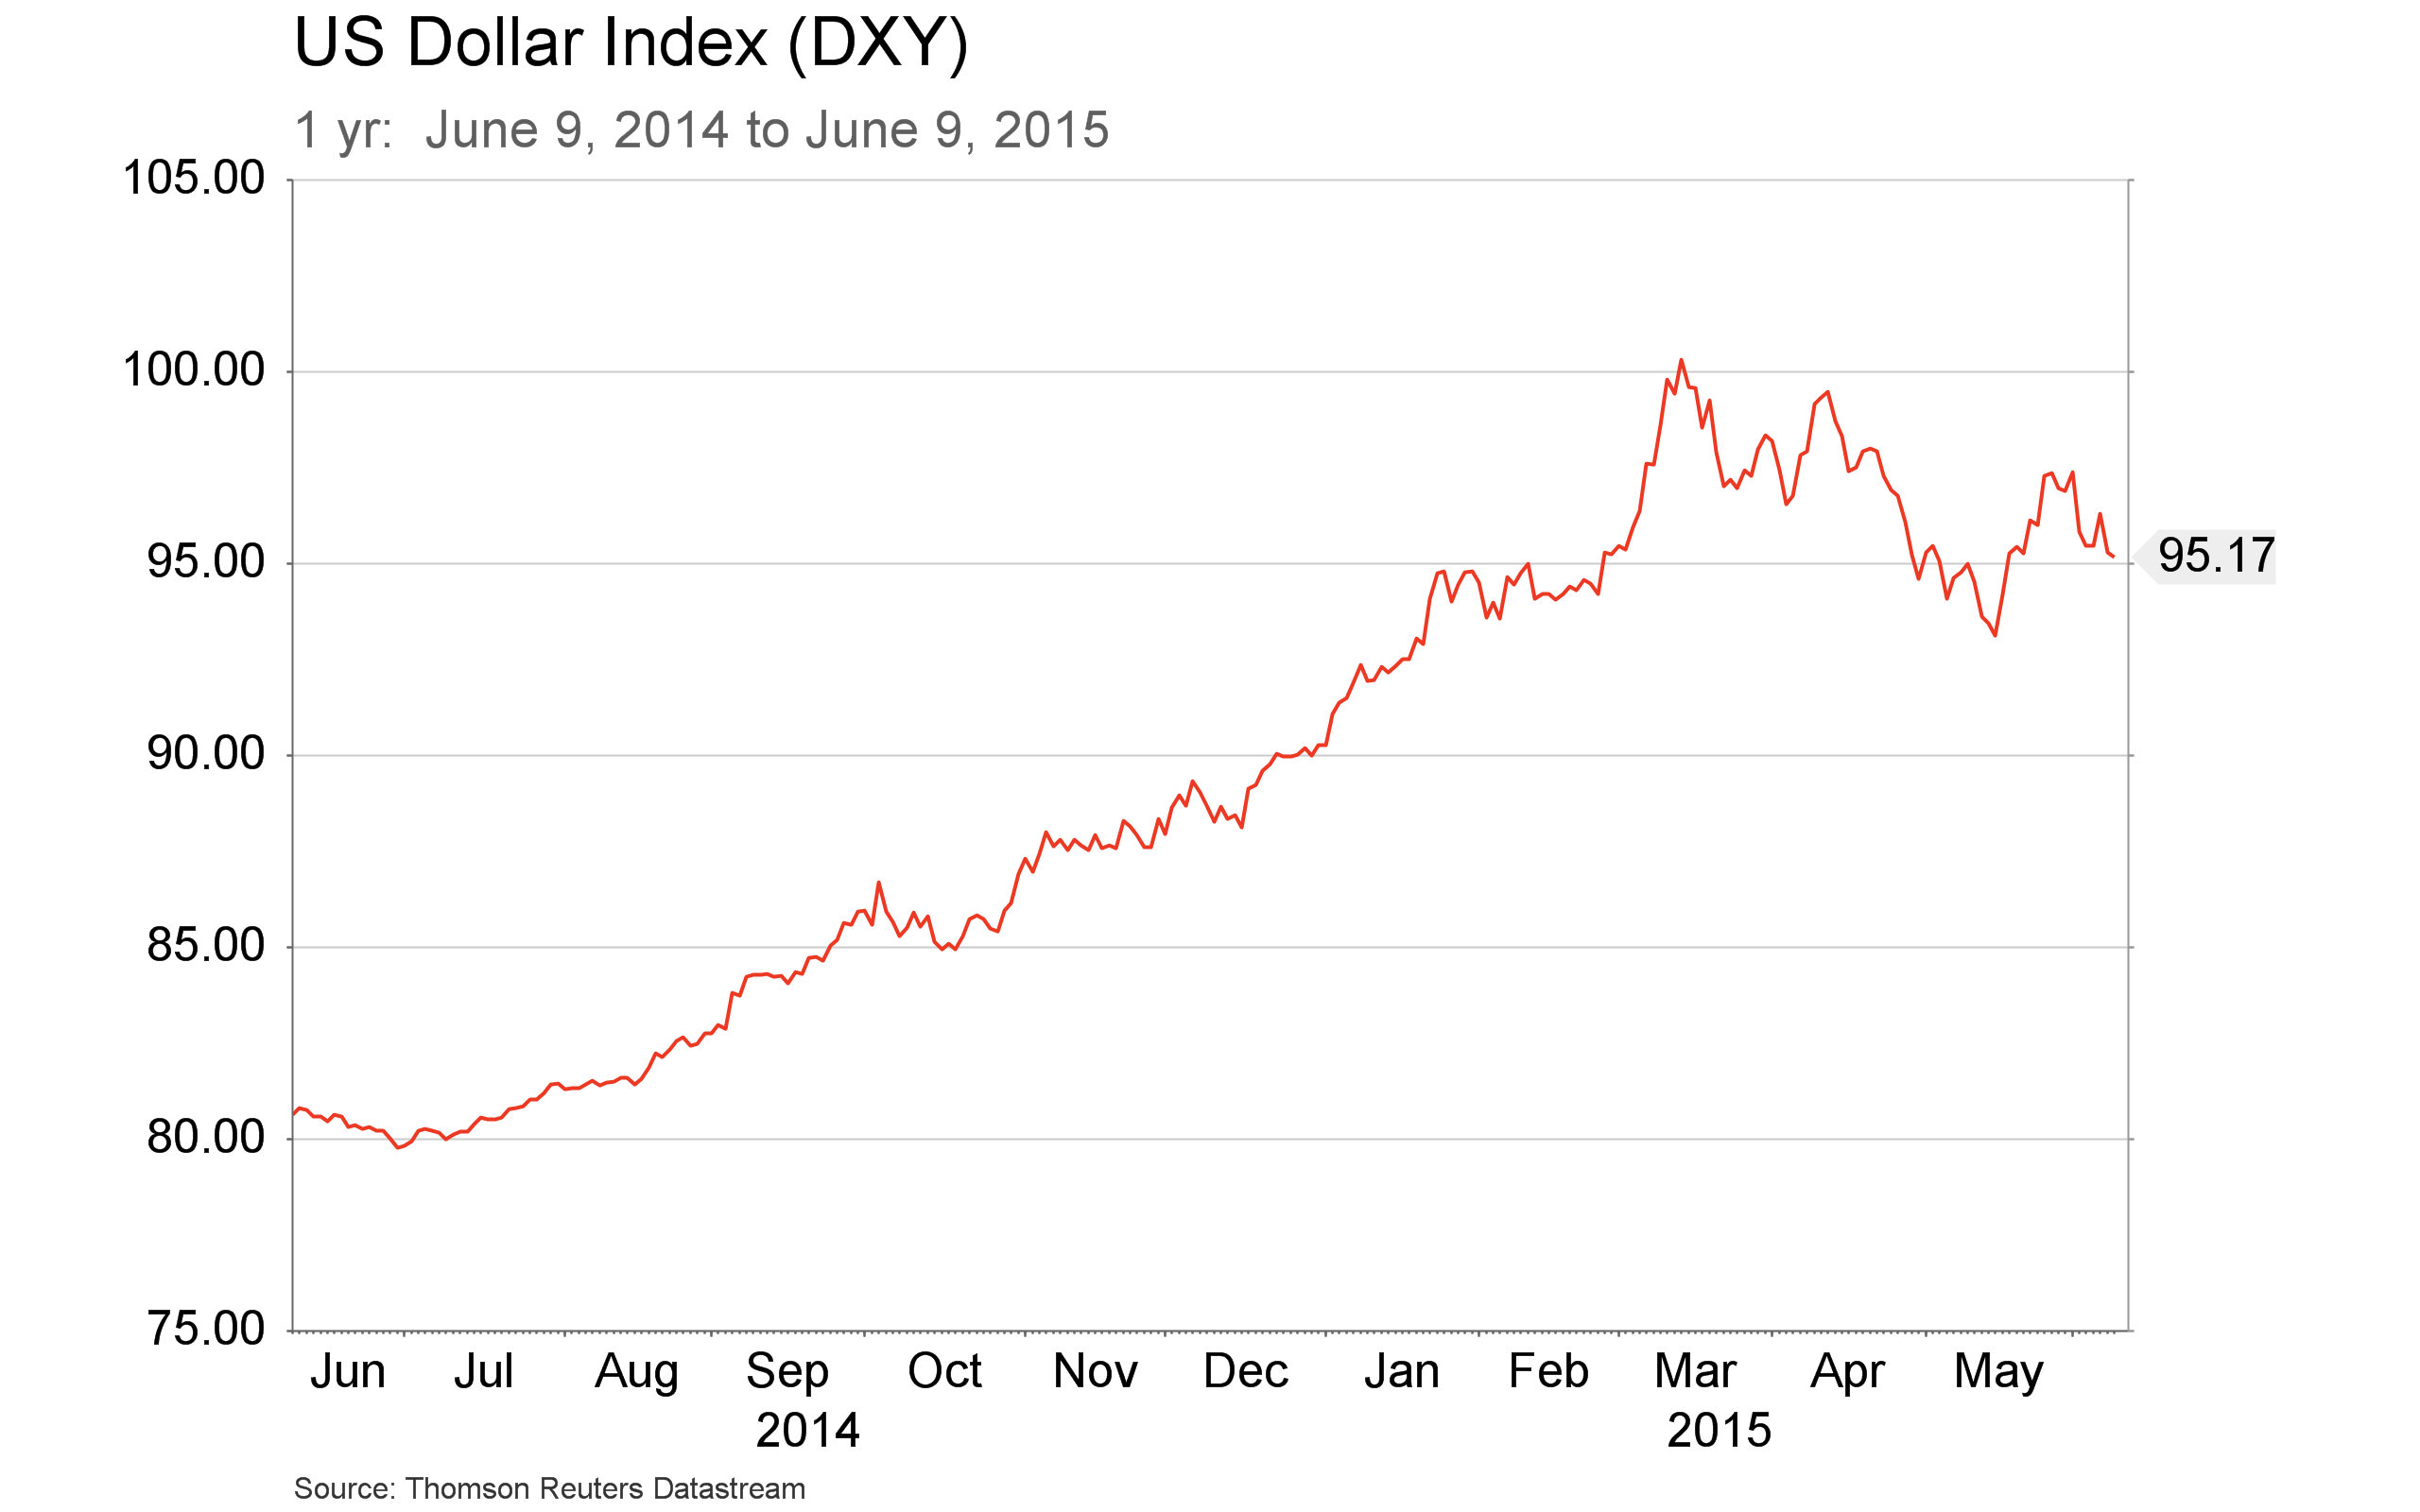 June 9 - DXY 1 yr